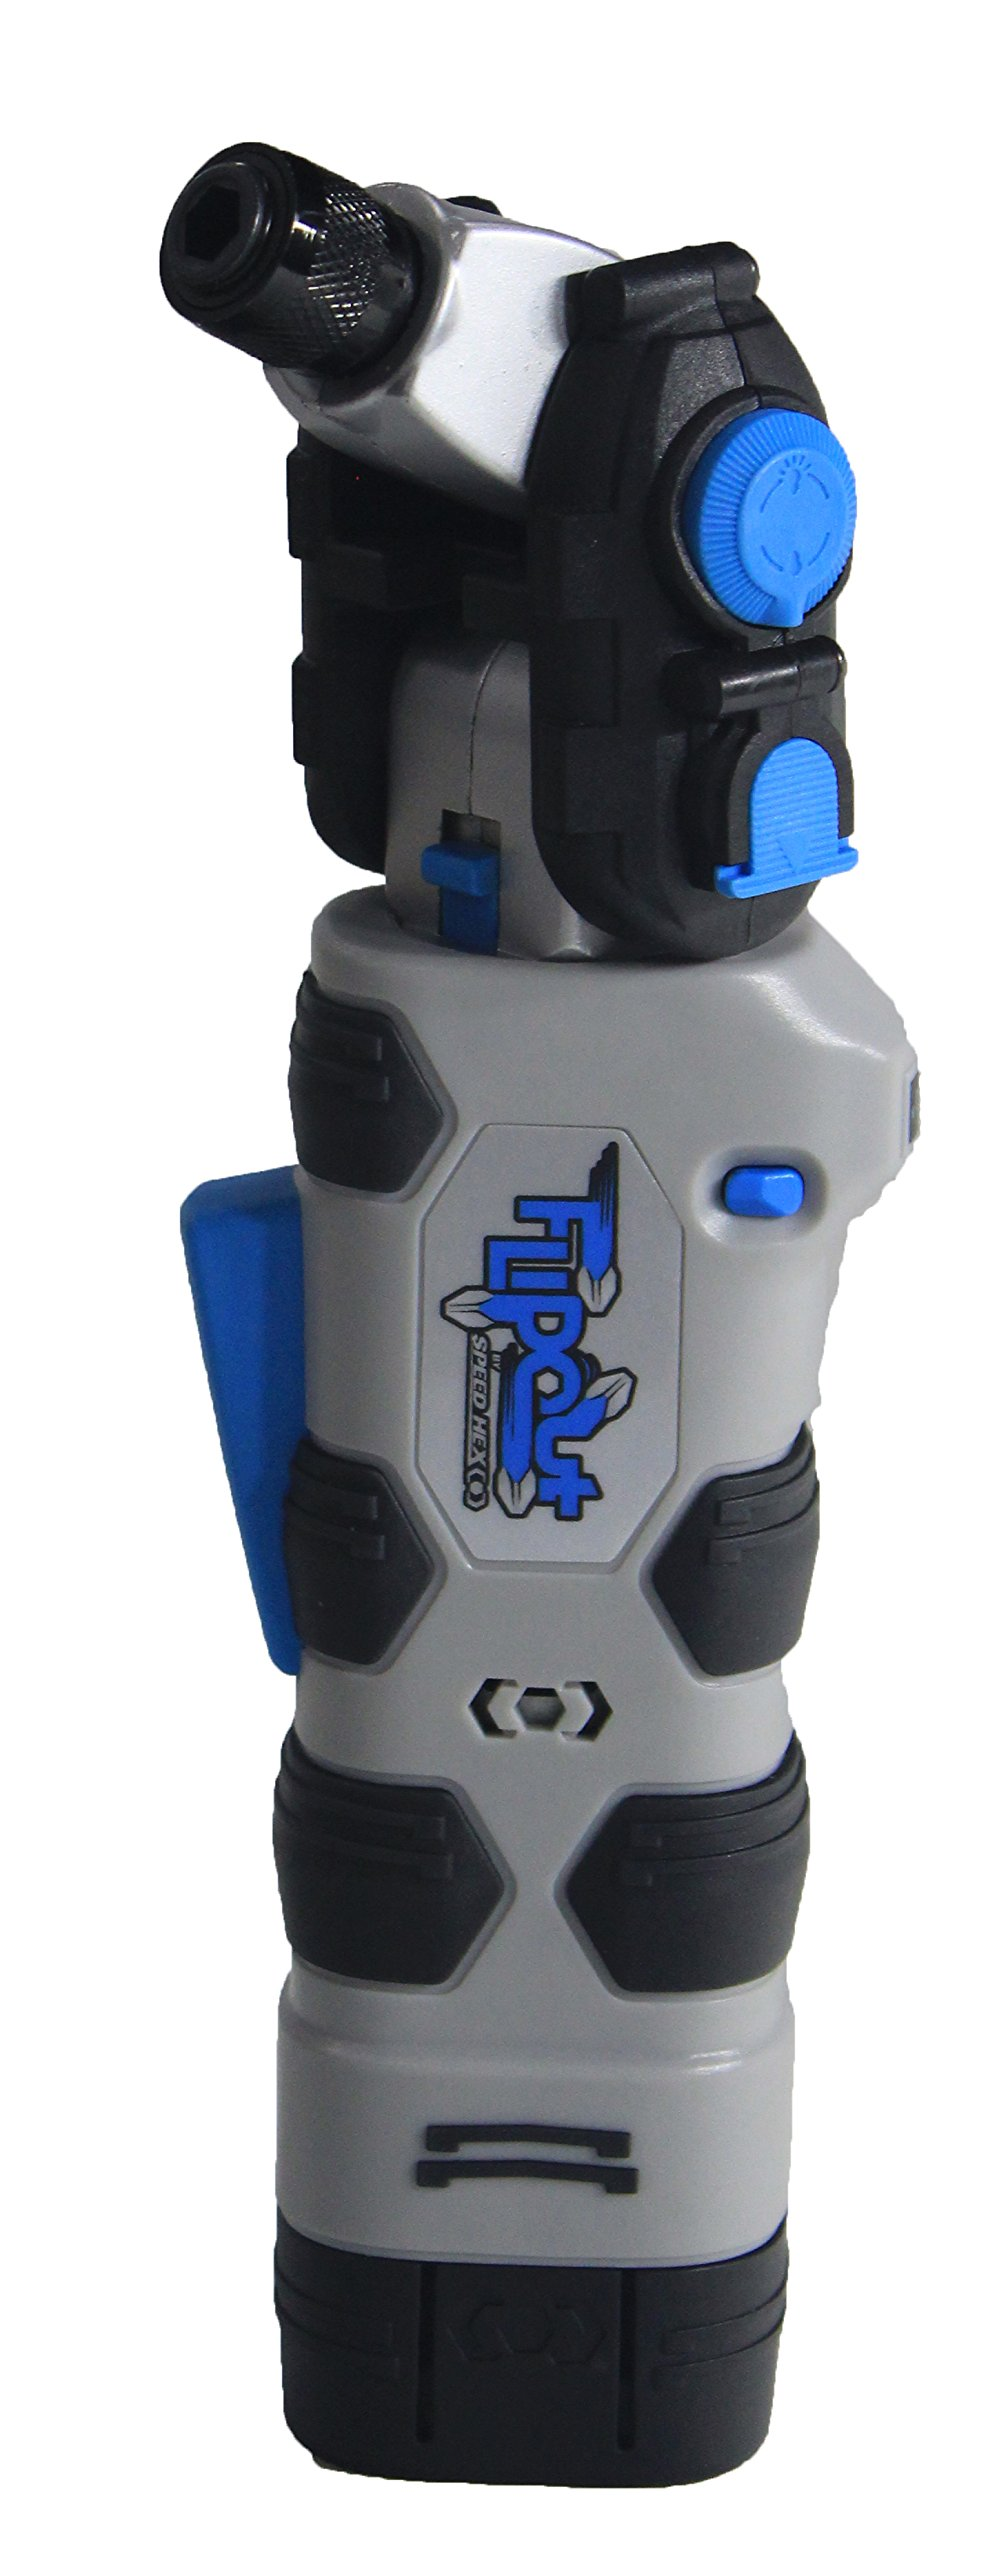 SpeedHex FlipOut 2 Rechargeable Power Driver with Removable Battery and Bonus Bits - FOSH162BP by SpeedHex